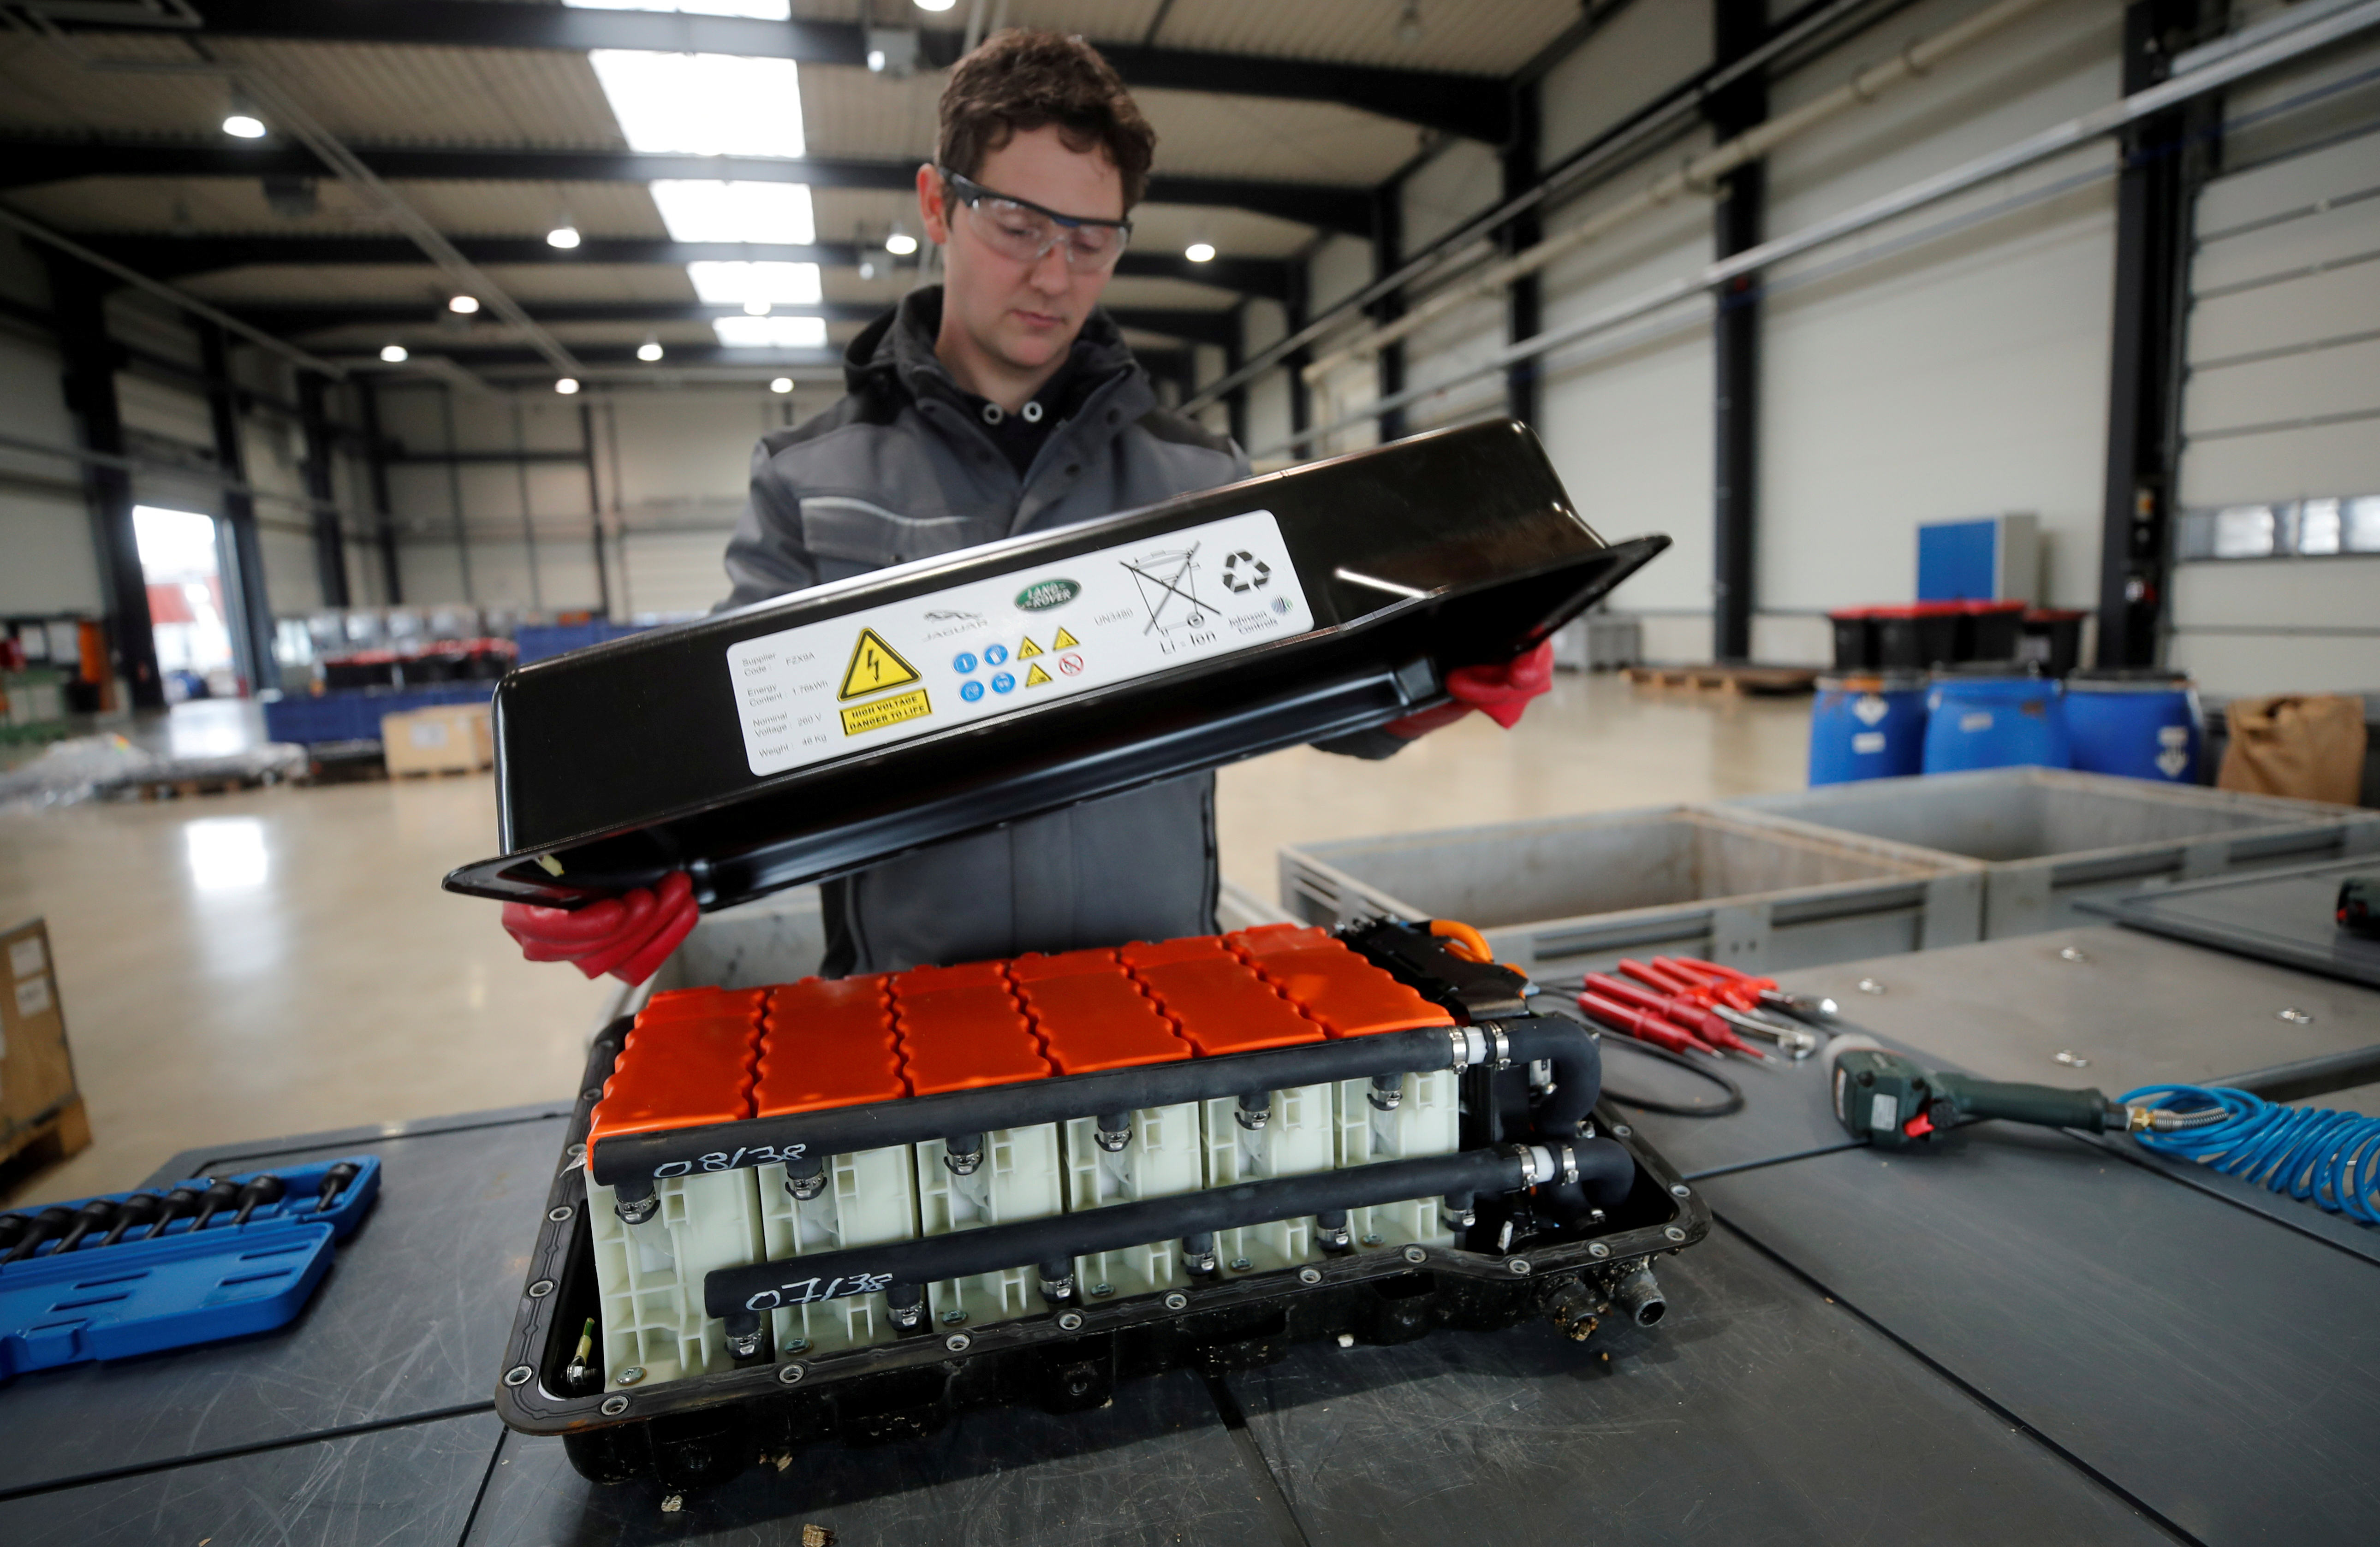 A used Lithium-ion car battery is opened before its dismantling by an employee of the German recycling firm Accurec in Krefeld, Germany, November 16, 2017. Picture taken November 16, 2017. REUTERS/Wolfgang Rattay